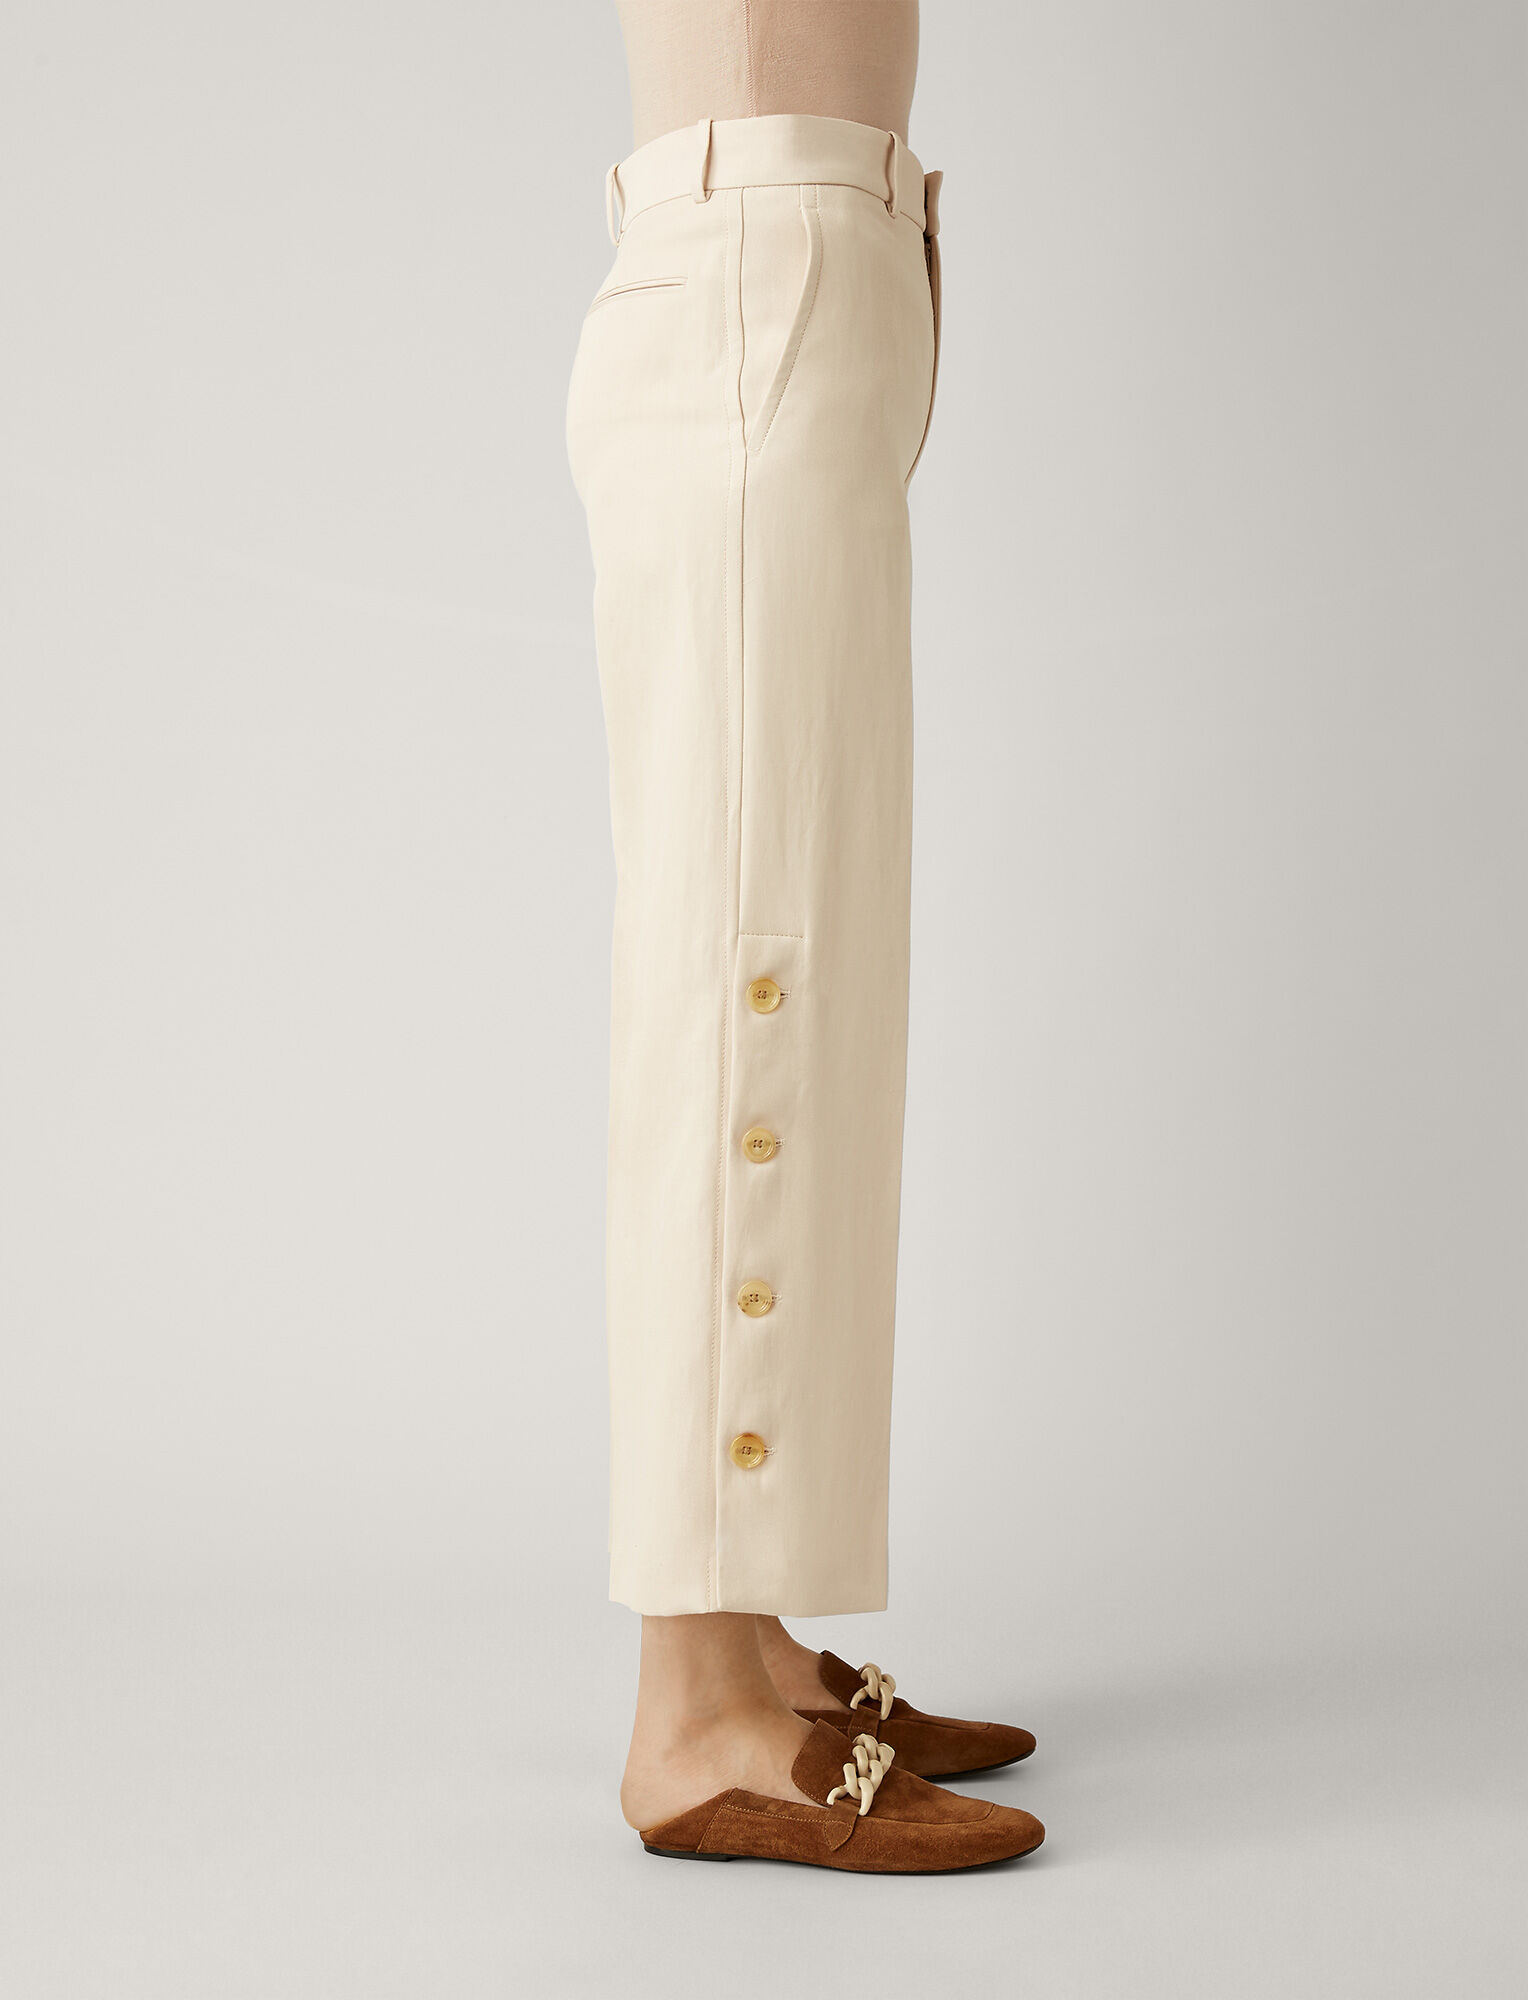 Joseph, Fade Ramie Cotton Trousers, in PEARL